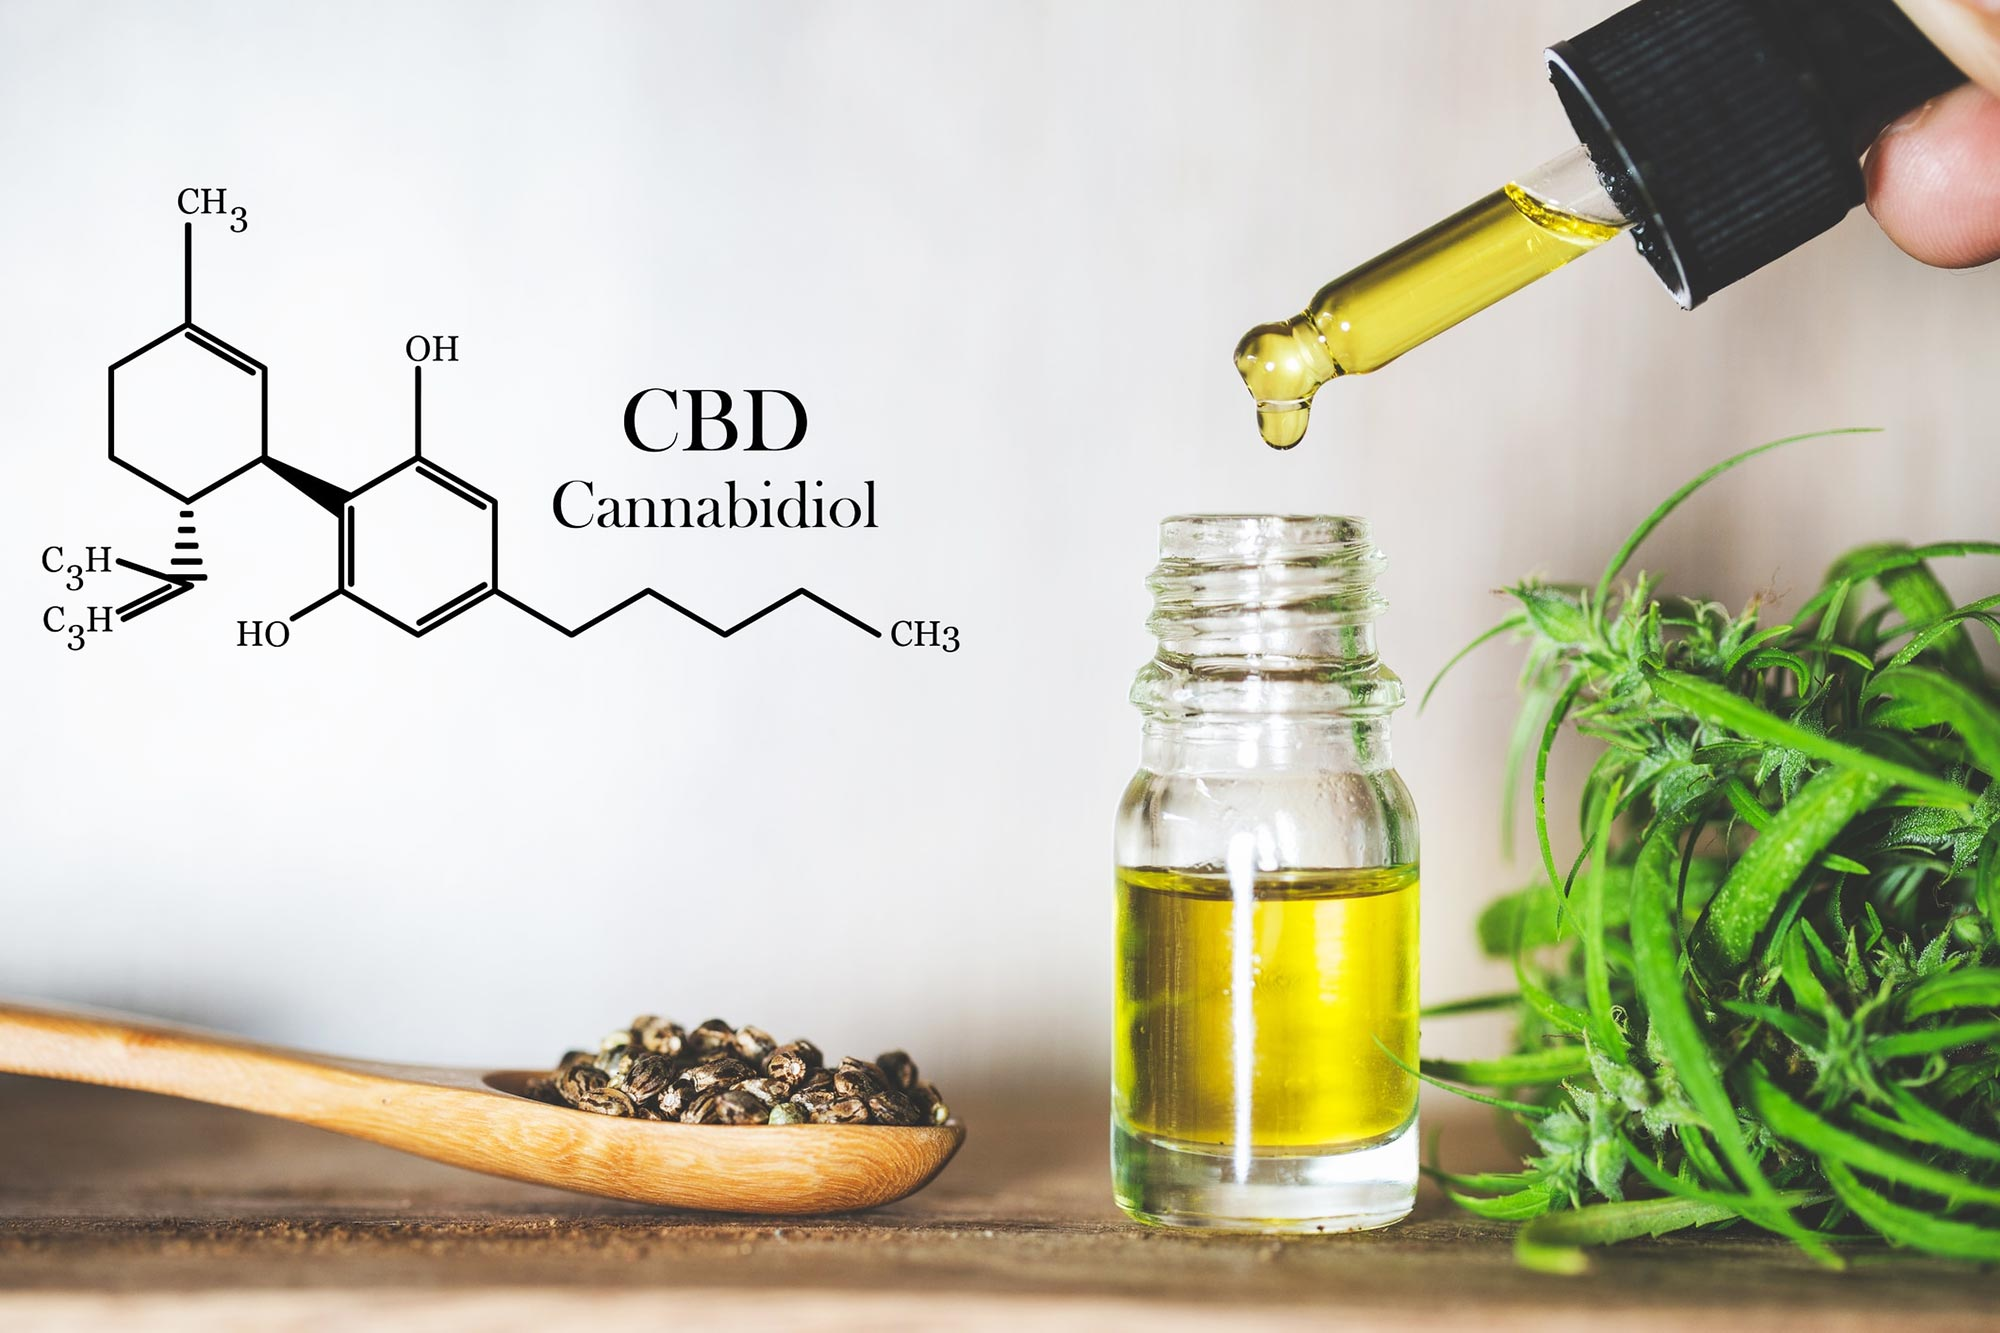 Pharma Aims to Make a Better CBD – Up to 50 Times More Potent